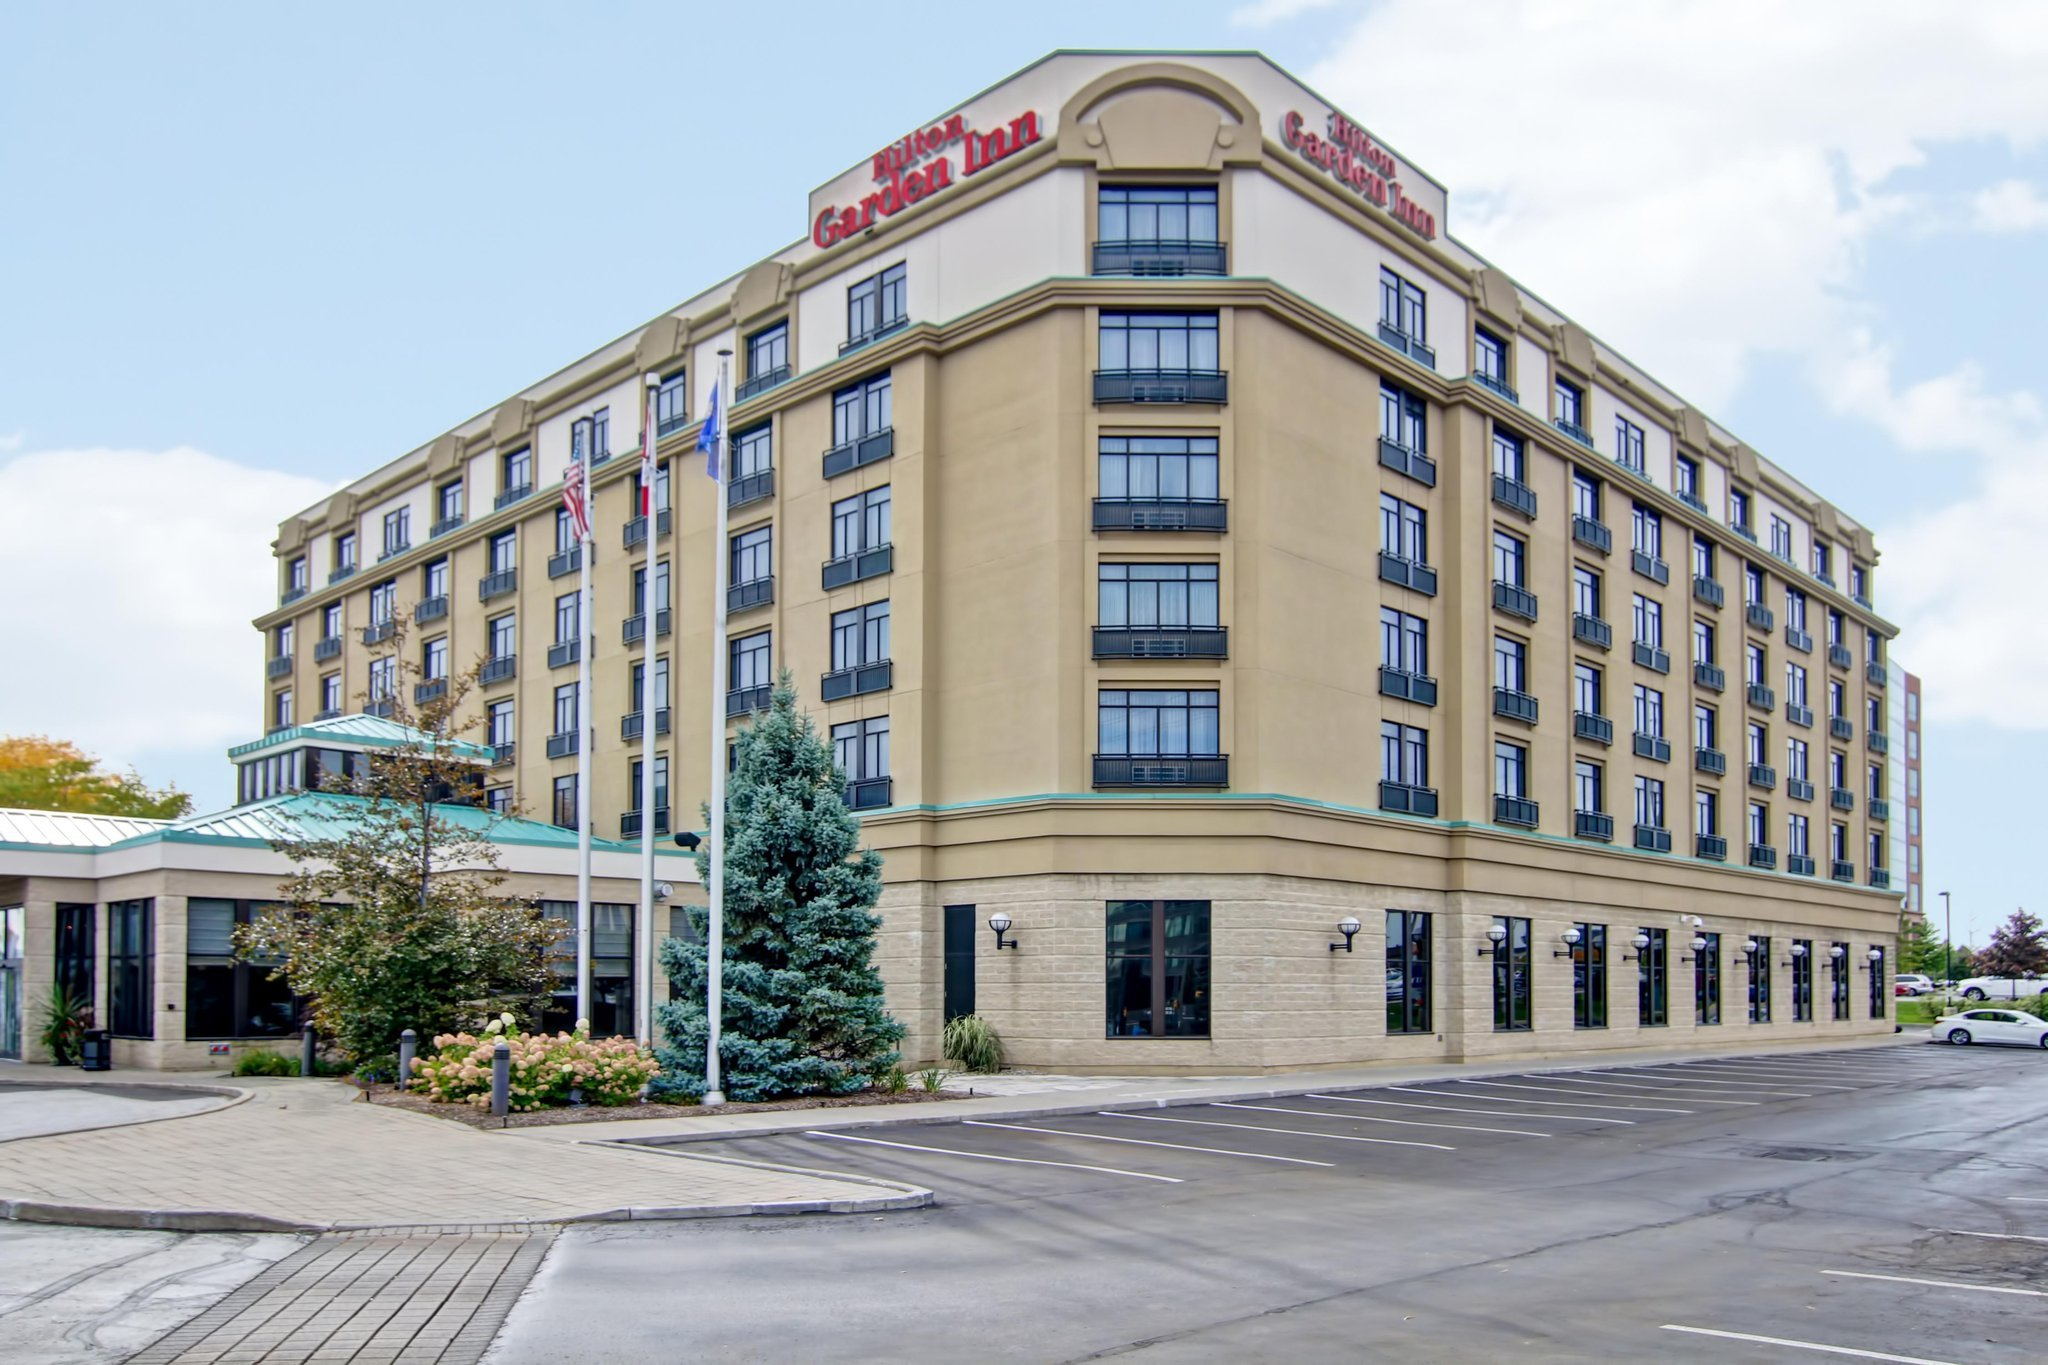 Hilton Garden Inn Kitchener Hilton Garden Inn Toronto Markham From Hk725 Updated 2017 Hotel